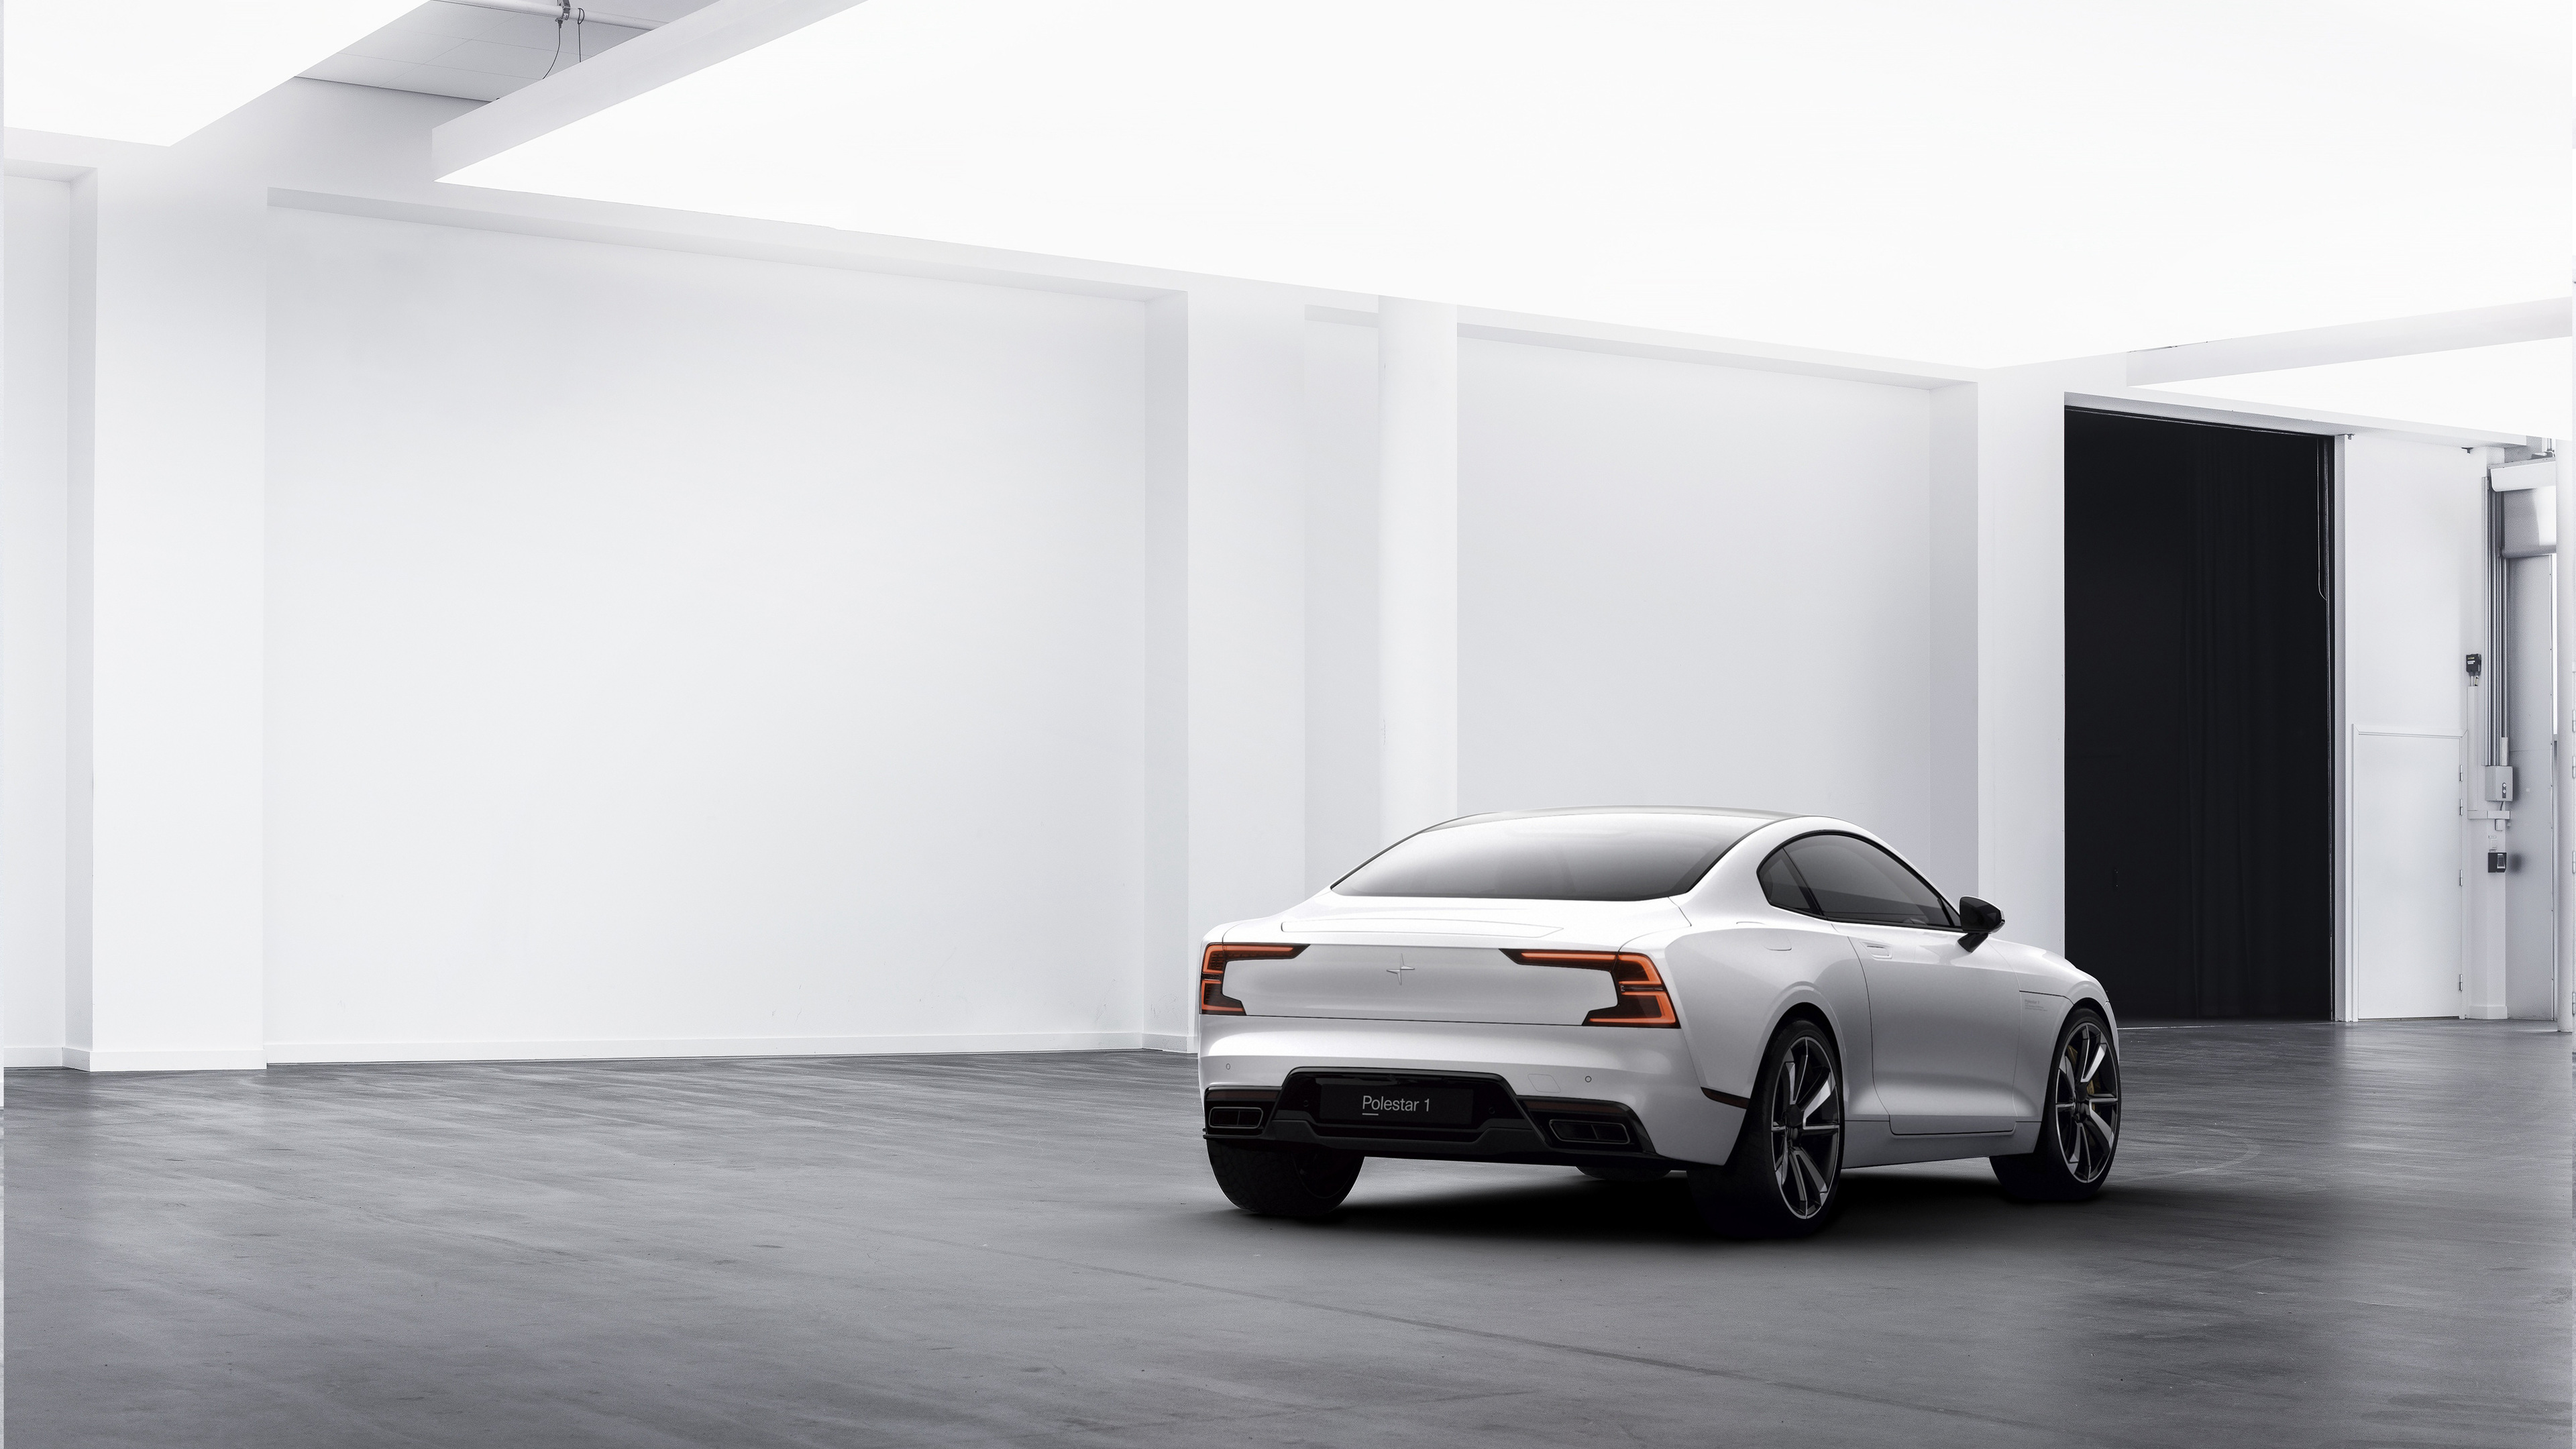 polestar 1 2019 rear 1539107335 - Polestar 1 2019 Rear - polestar 1 wallpapers, hd-wallpapers, cars wallpapers, 4k-wallpapers, 2019 cars wallpapers